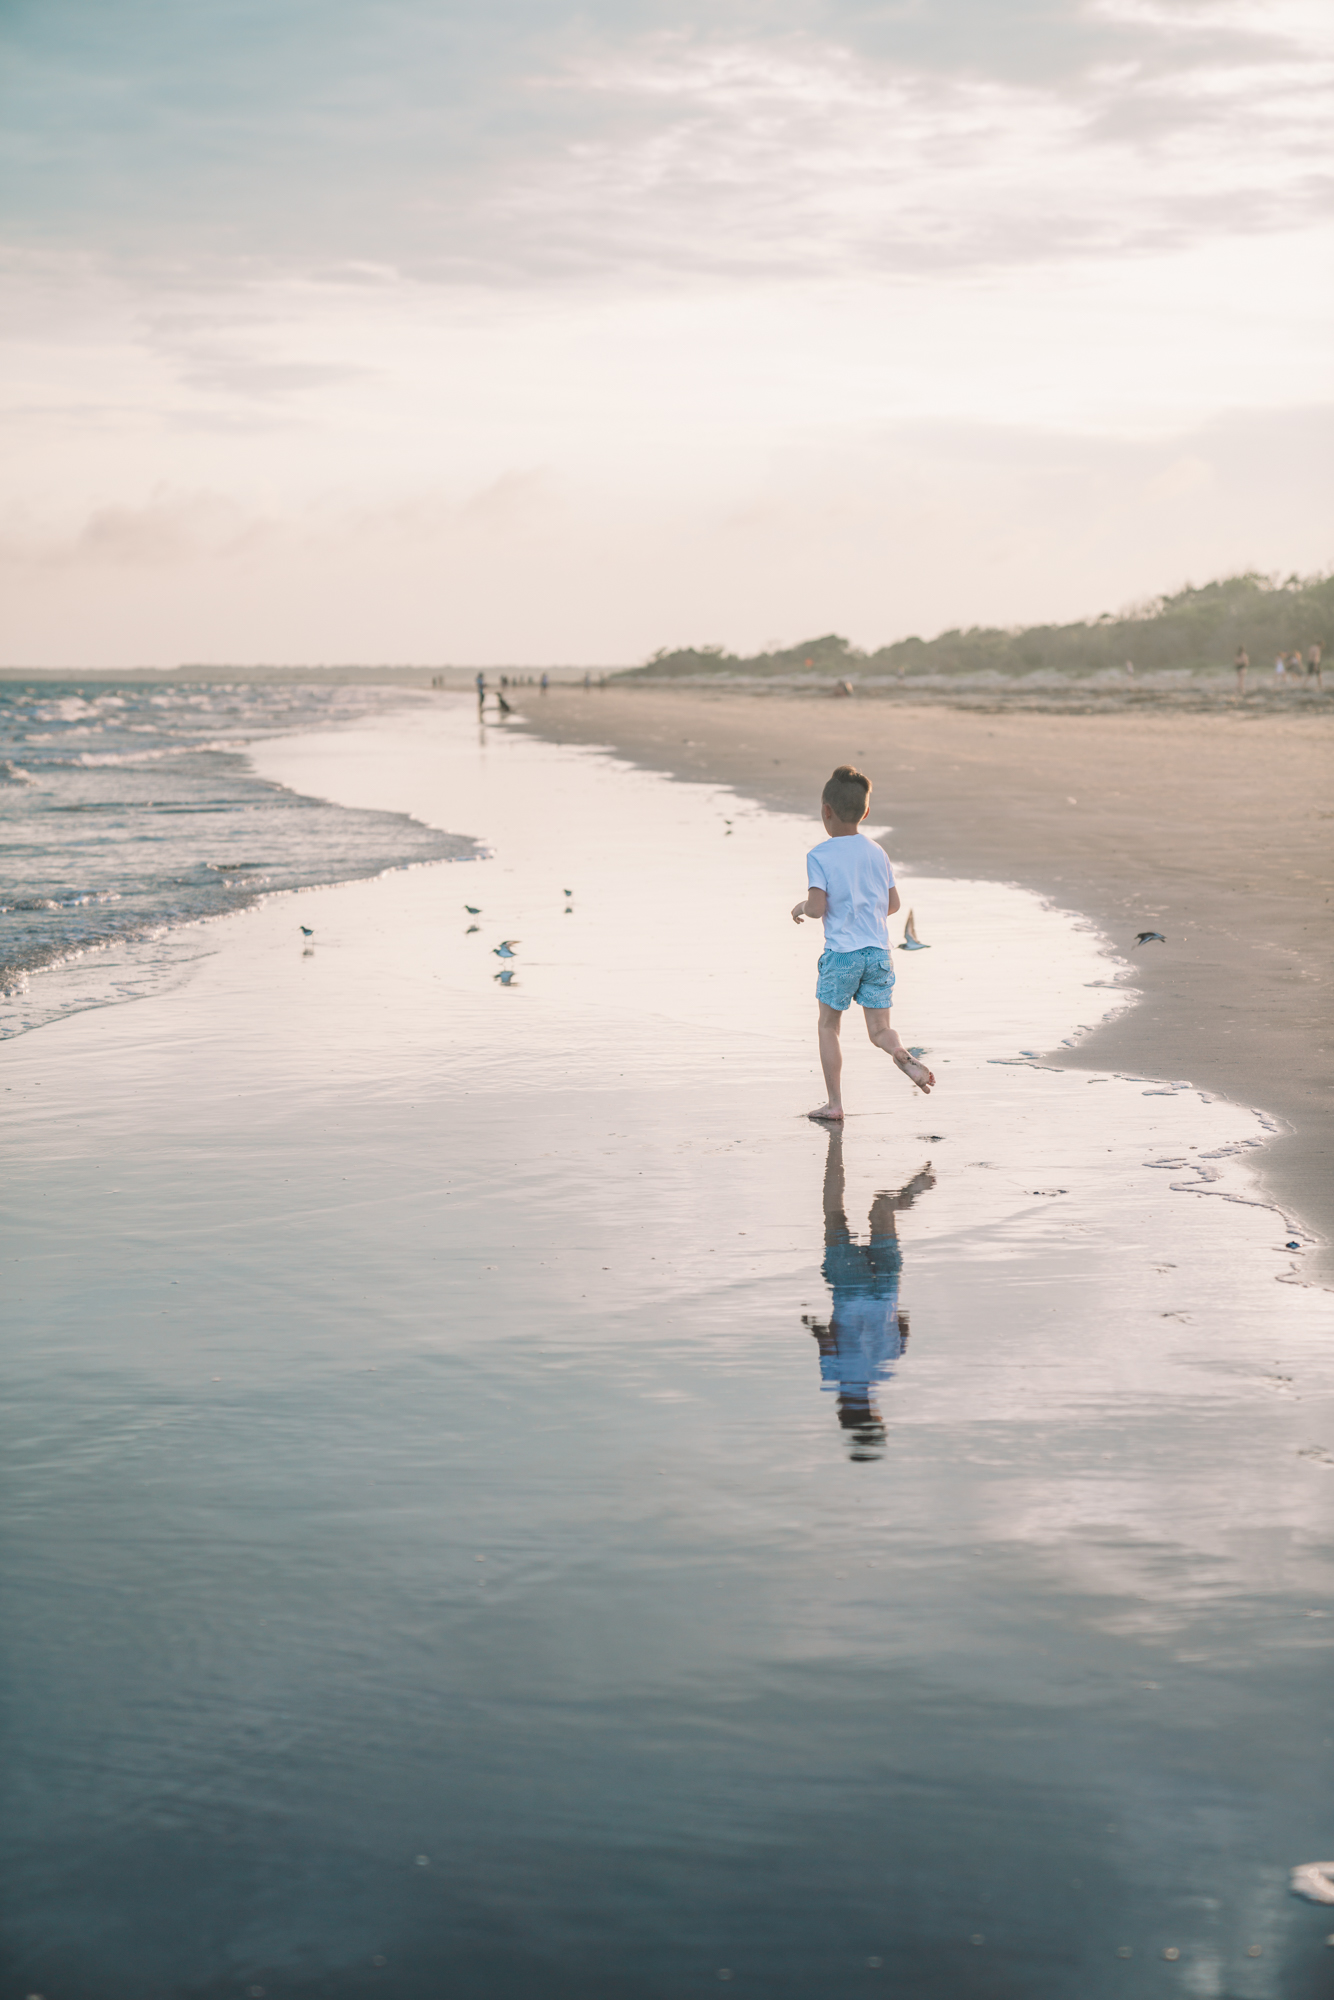 Things to do in Charleston sc with kids - A little boy runs along the shore on the beach - his reflection can be seen in the water.